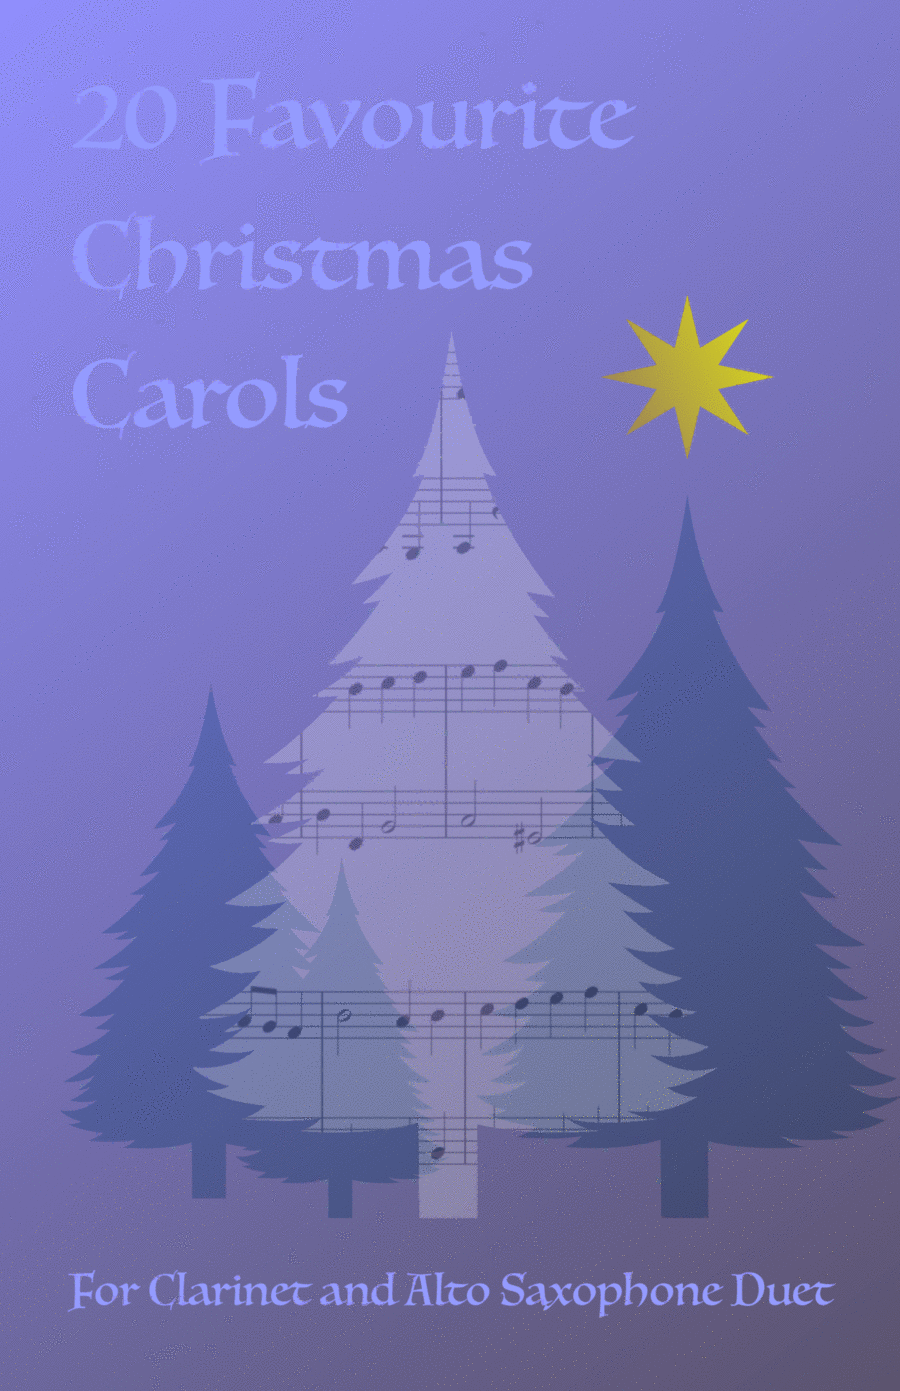 20 Favourite Christmas Carols for Clarinet and Alto Saxophone Duet